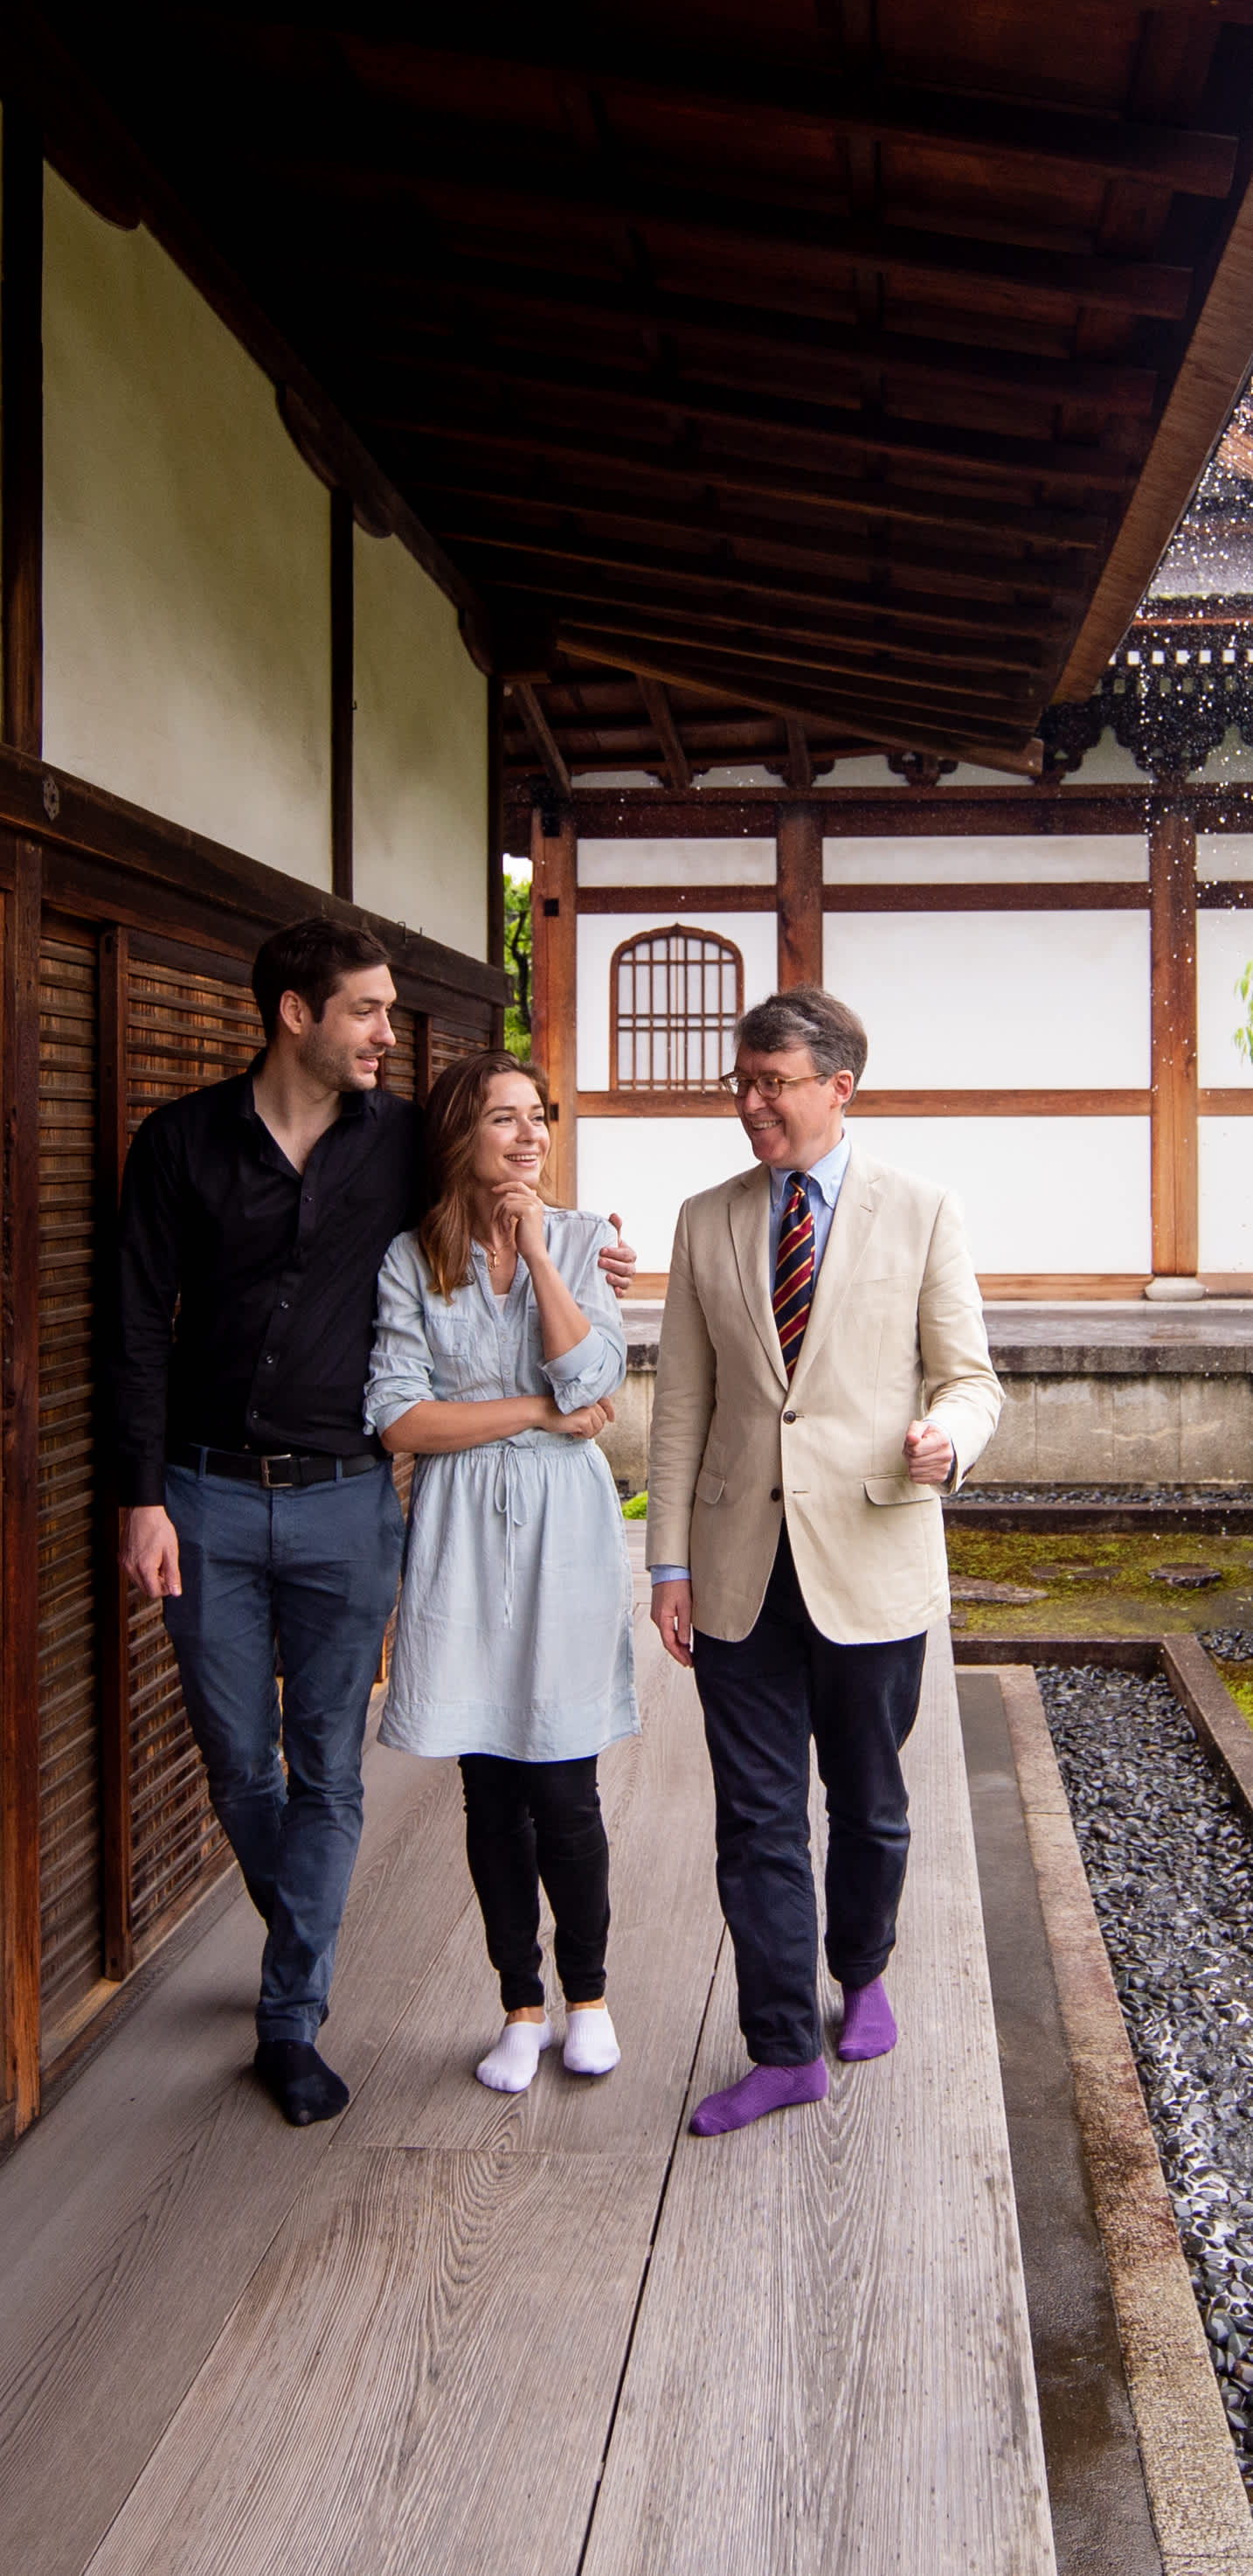 An expert-led tour in Kyoto